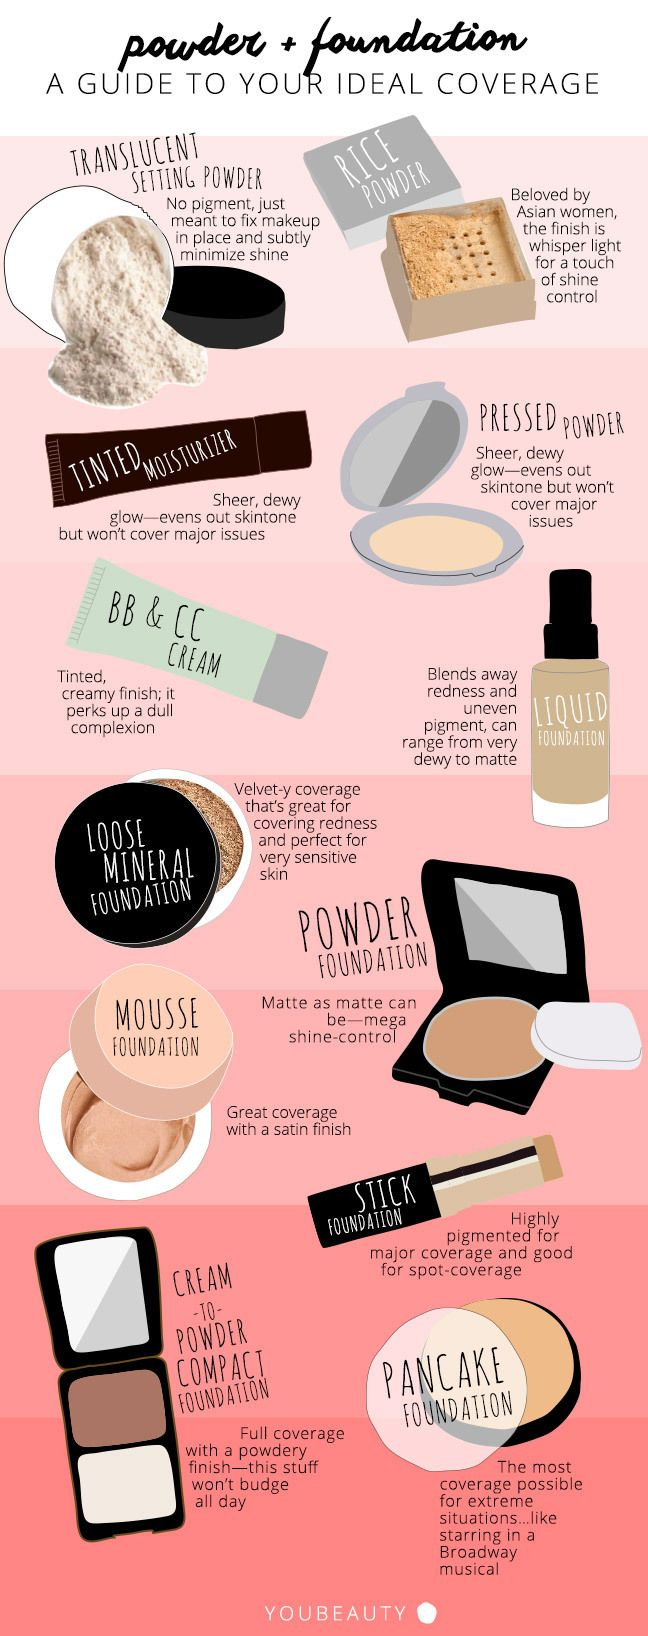 Powder and Foundation Cheat Sheet: Find the Right Coverage for You